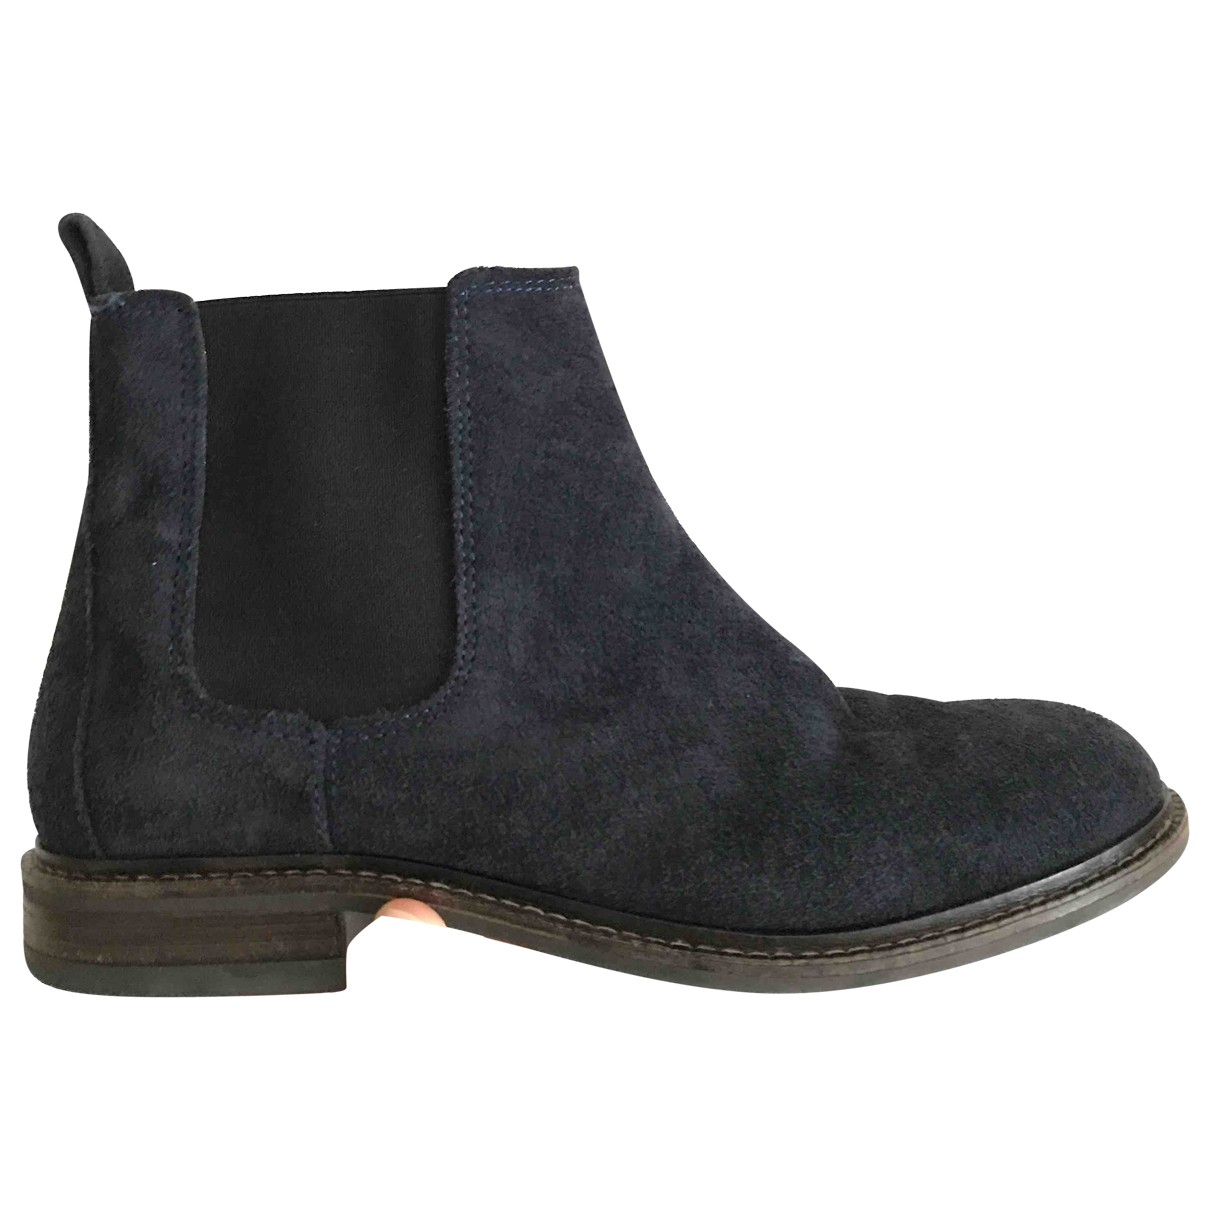 Clarks \N Blue Suede Ankle boots for Women 5 UK